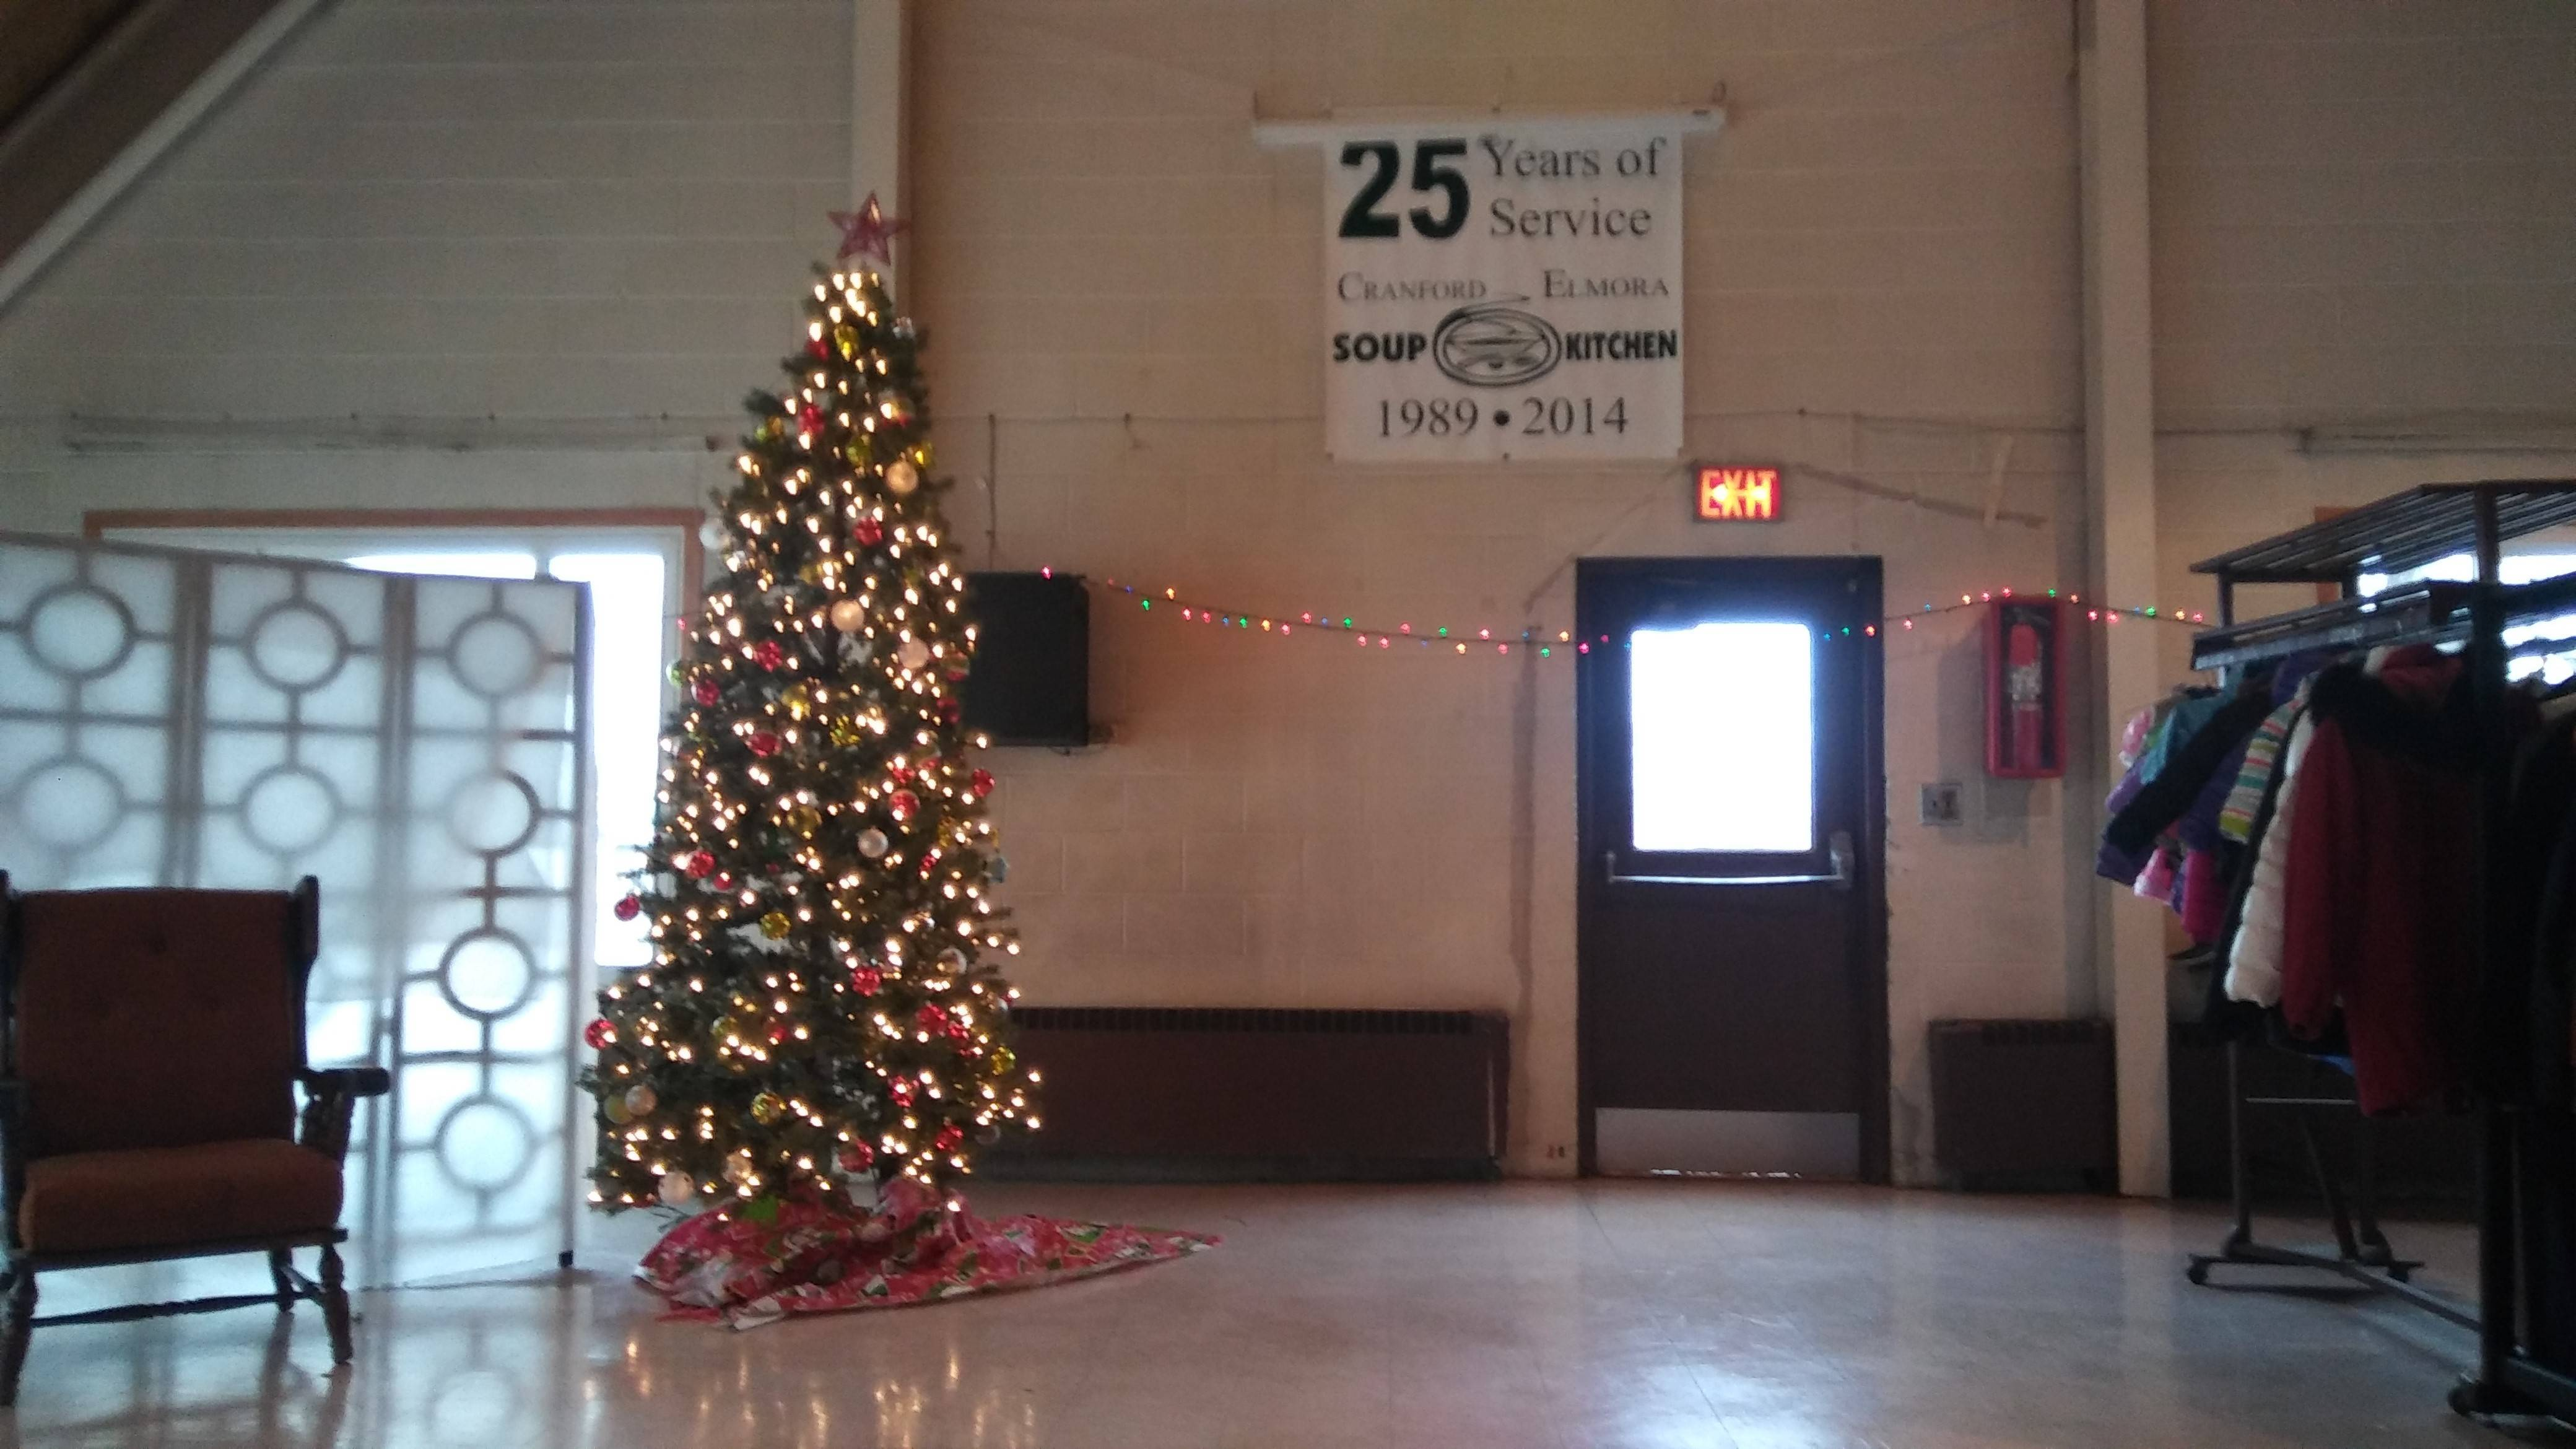 992879483cf65a116e1a_A_Christmas_tree_lights_the_corner_of_the_hall.jpg